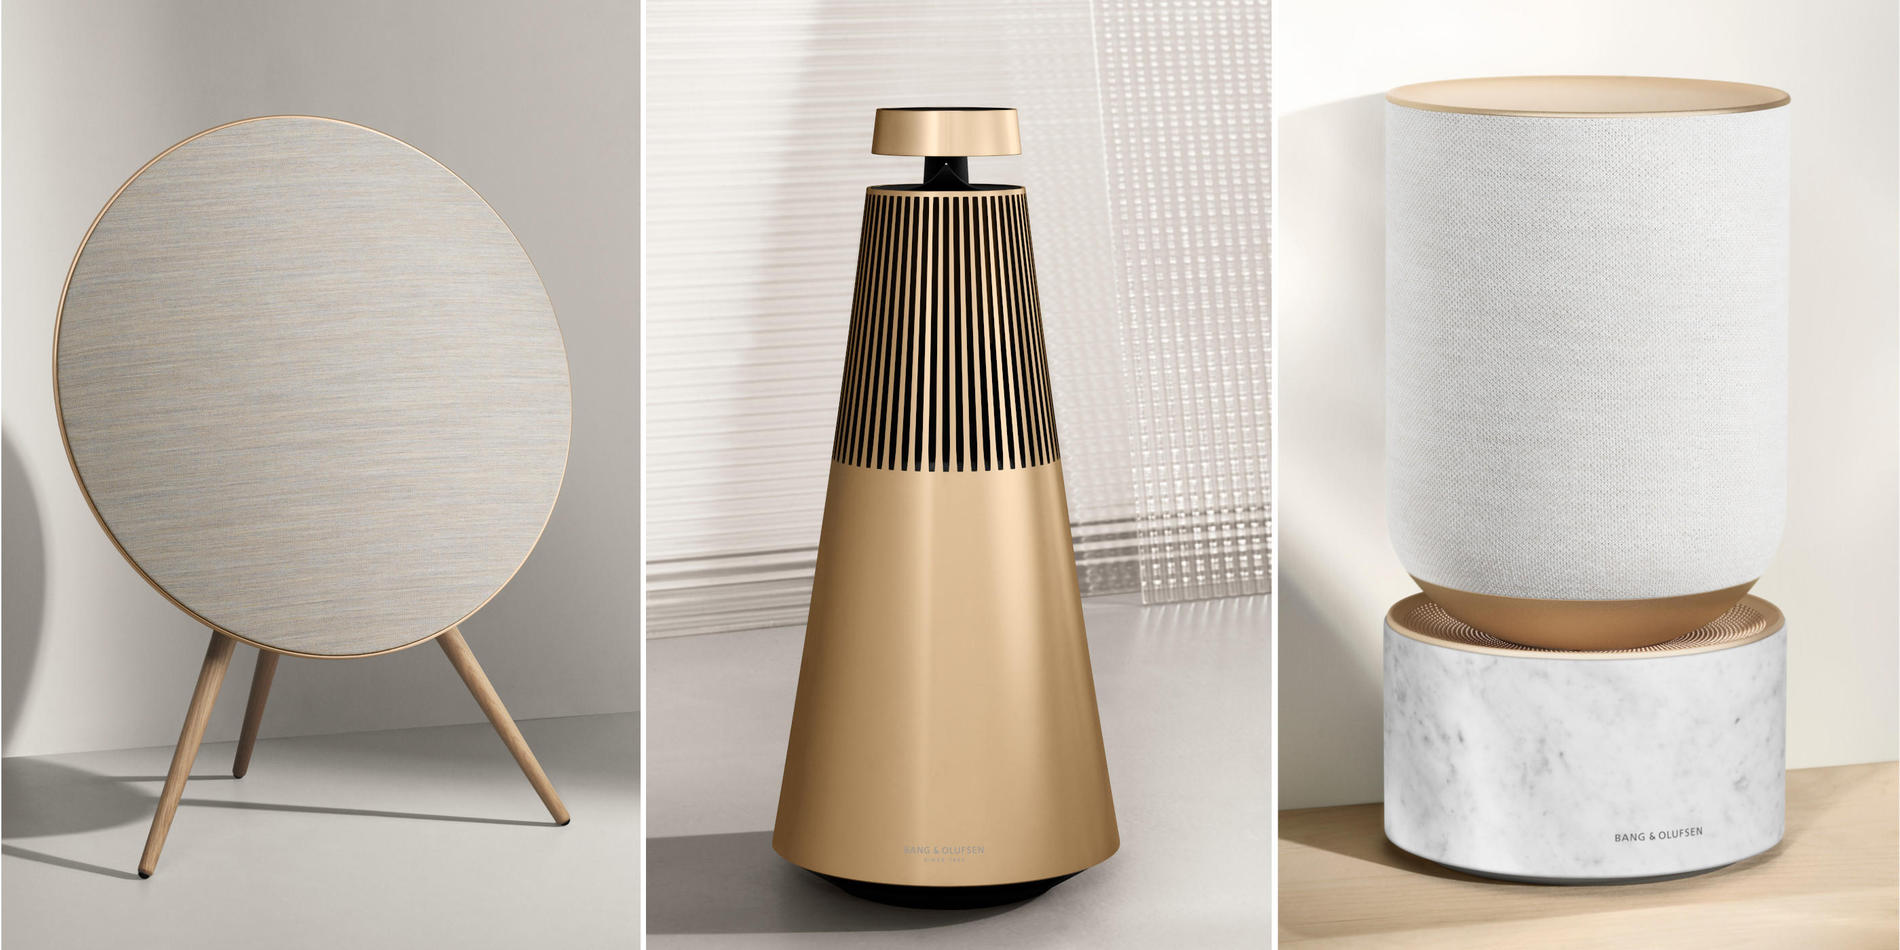 Golden Collection - Bang & Olufsen